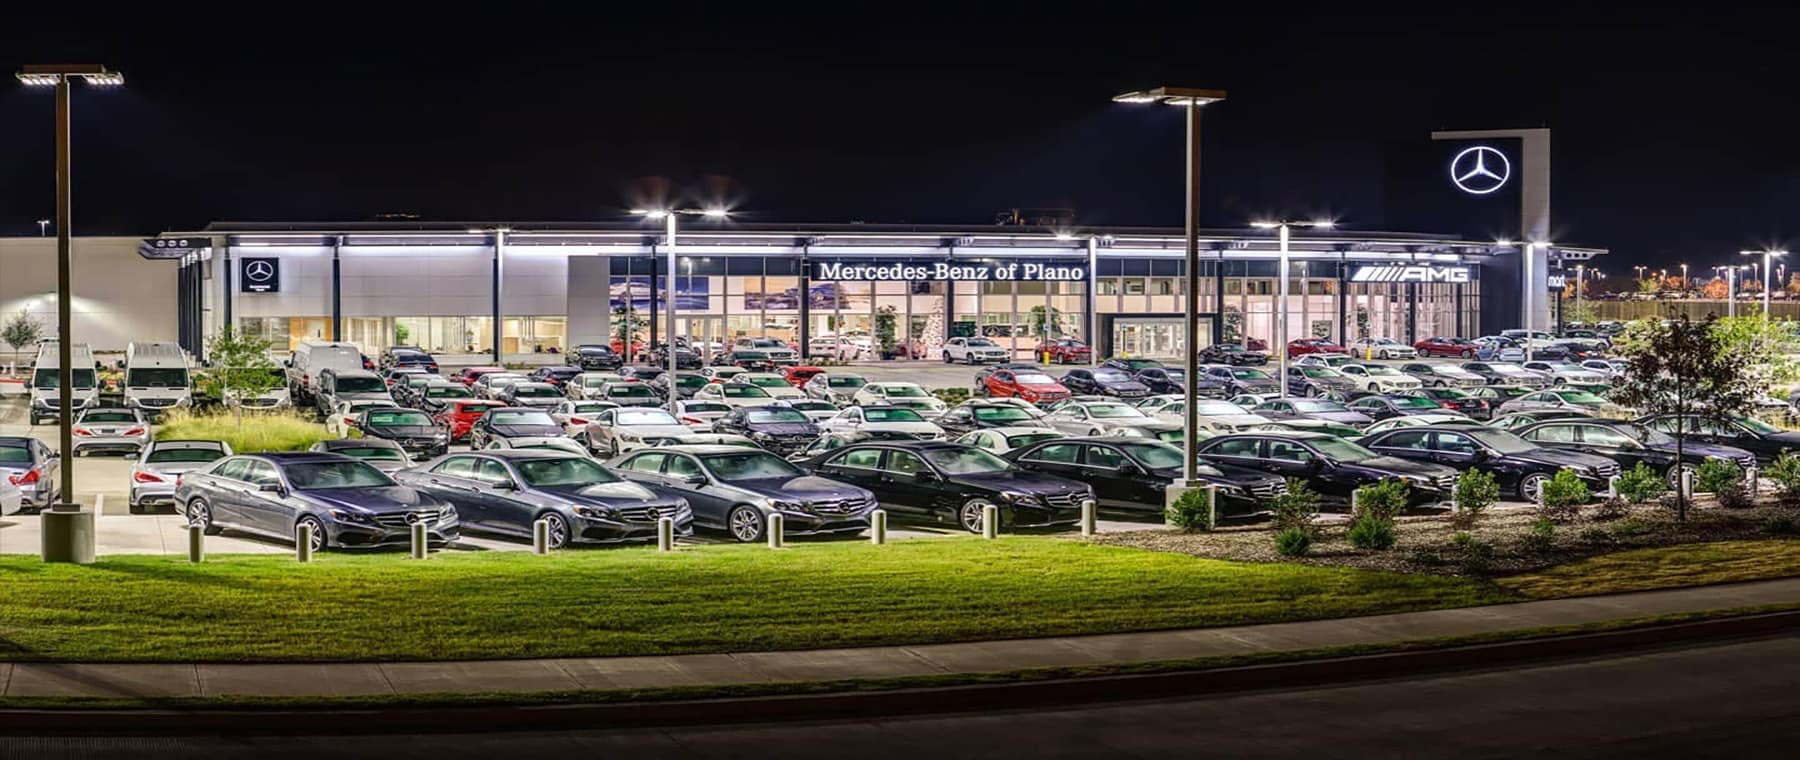 Mercedes Benz Of Plano Luxury Auto Dealership Near Frisco